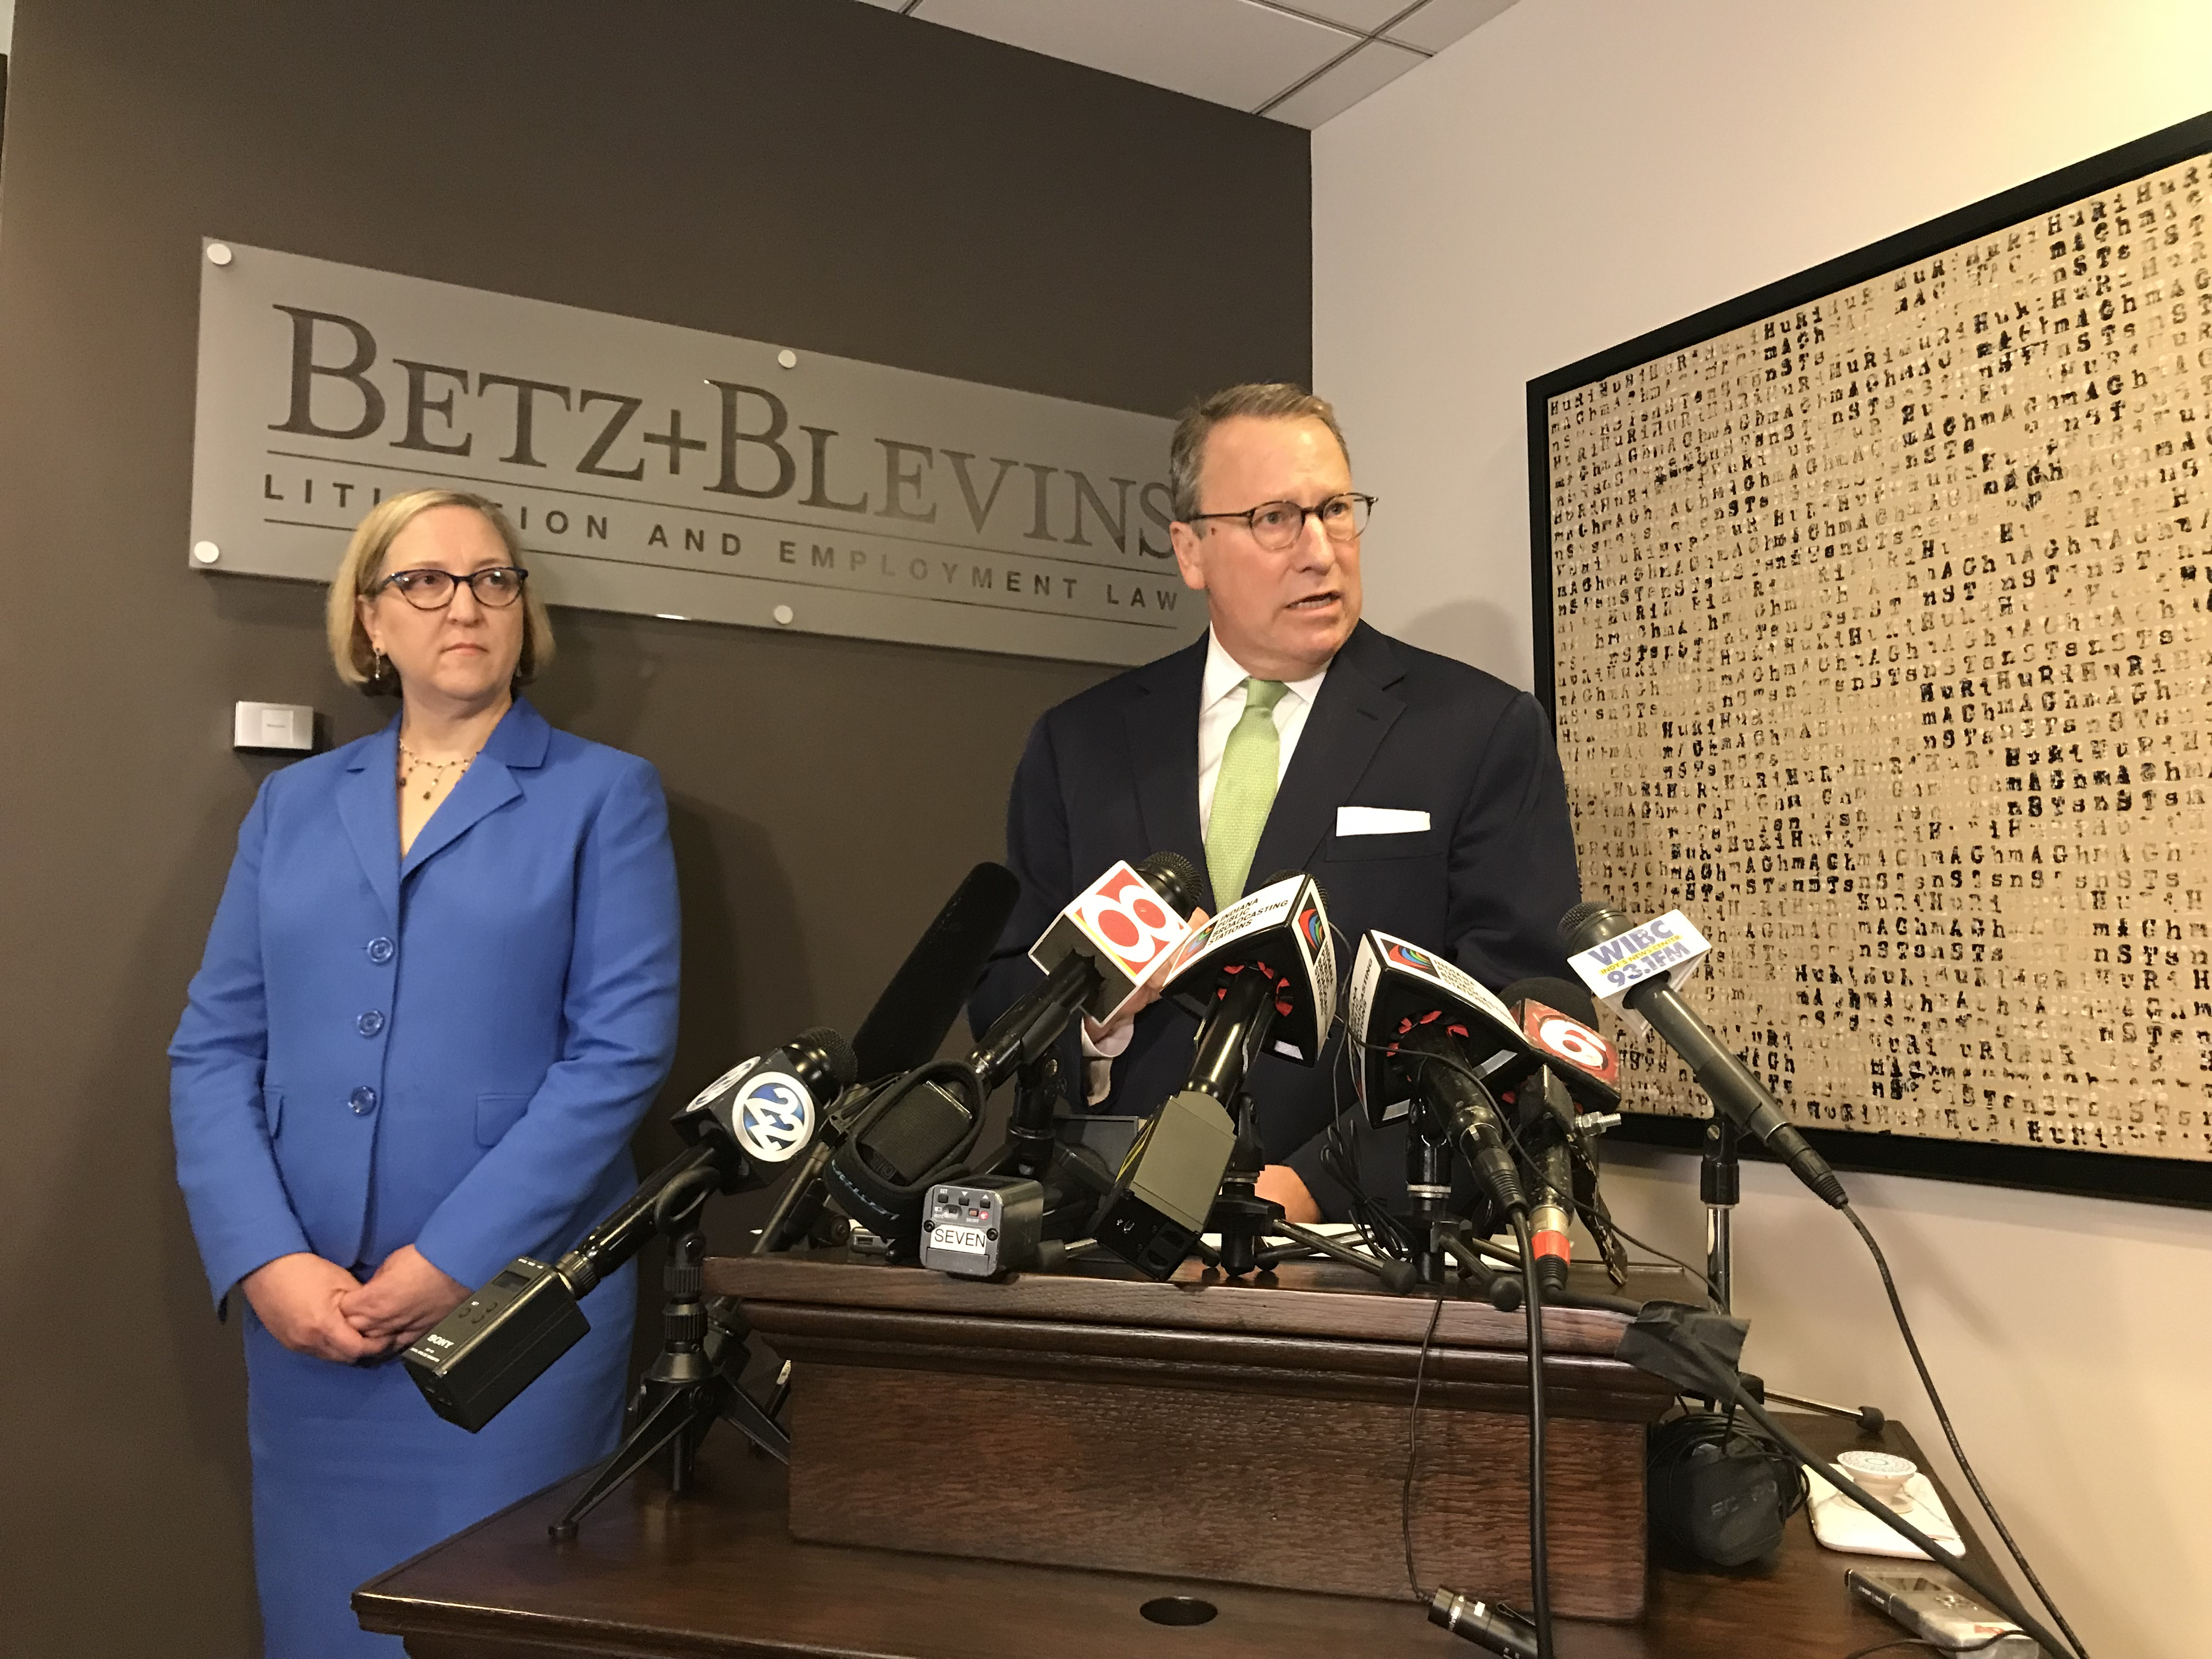 betz press conference